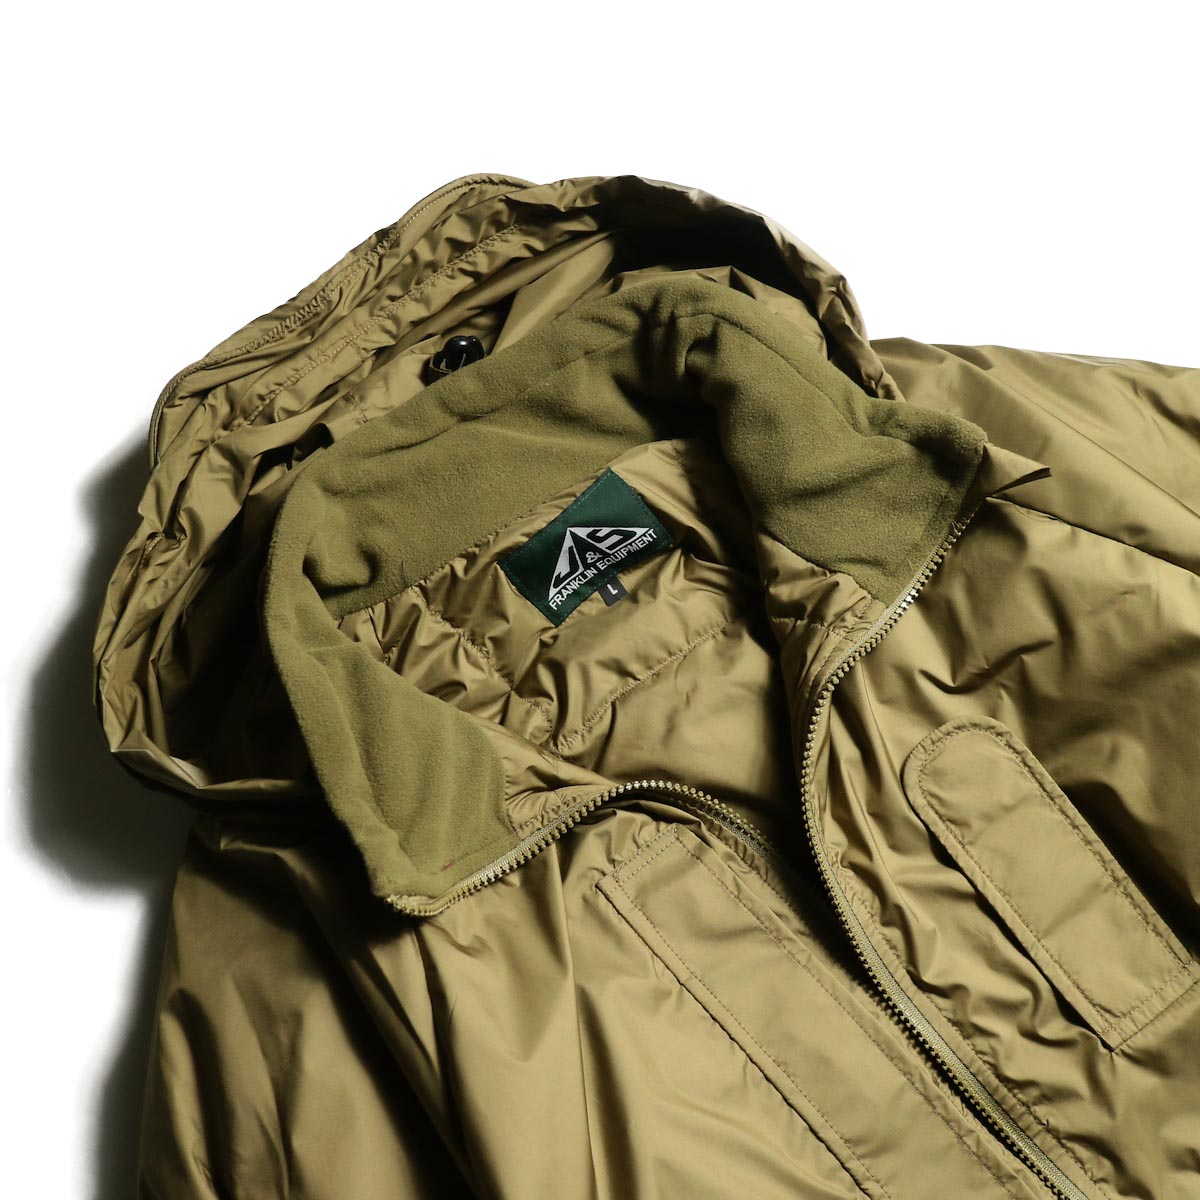 J&S Franklin / BRITISH ARMY PCS LIGHT WEIGHT DOWN JACKET (Coyote) 襟